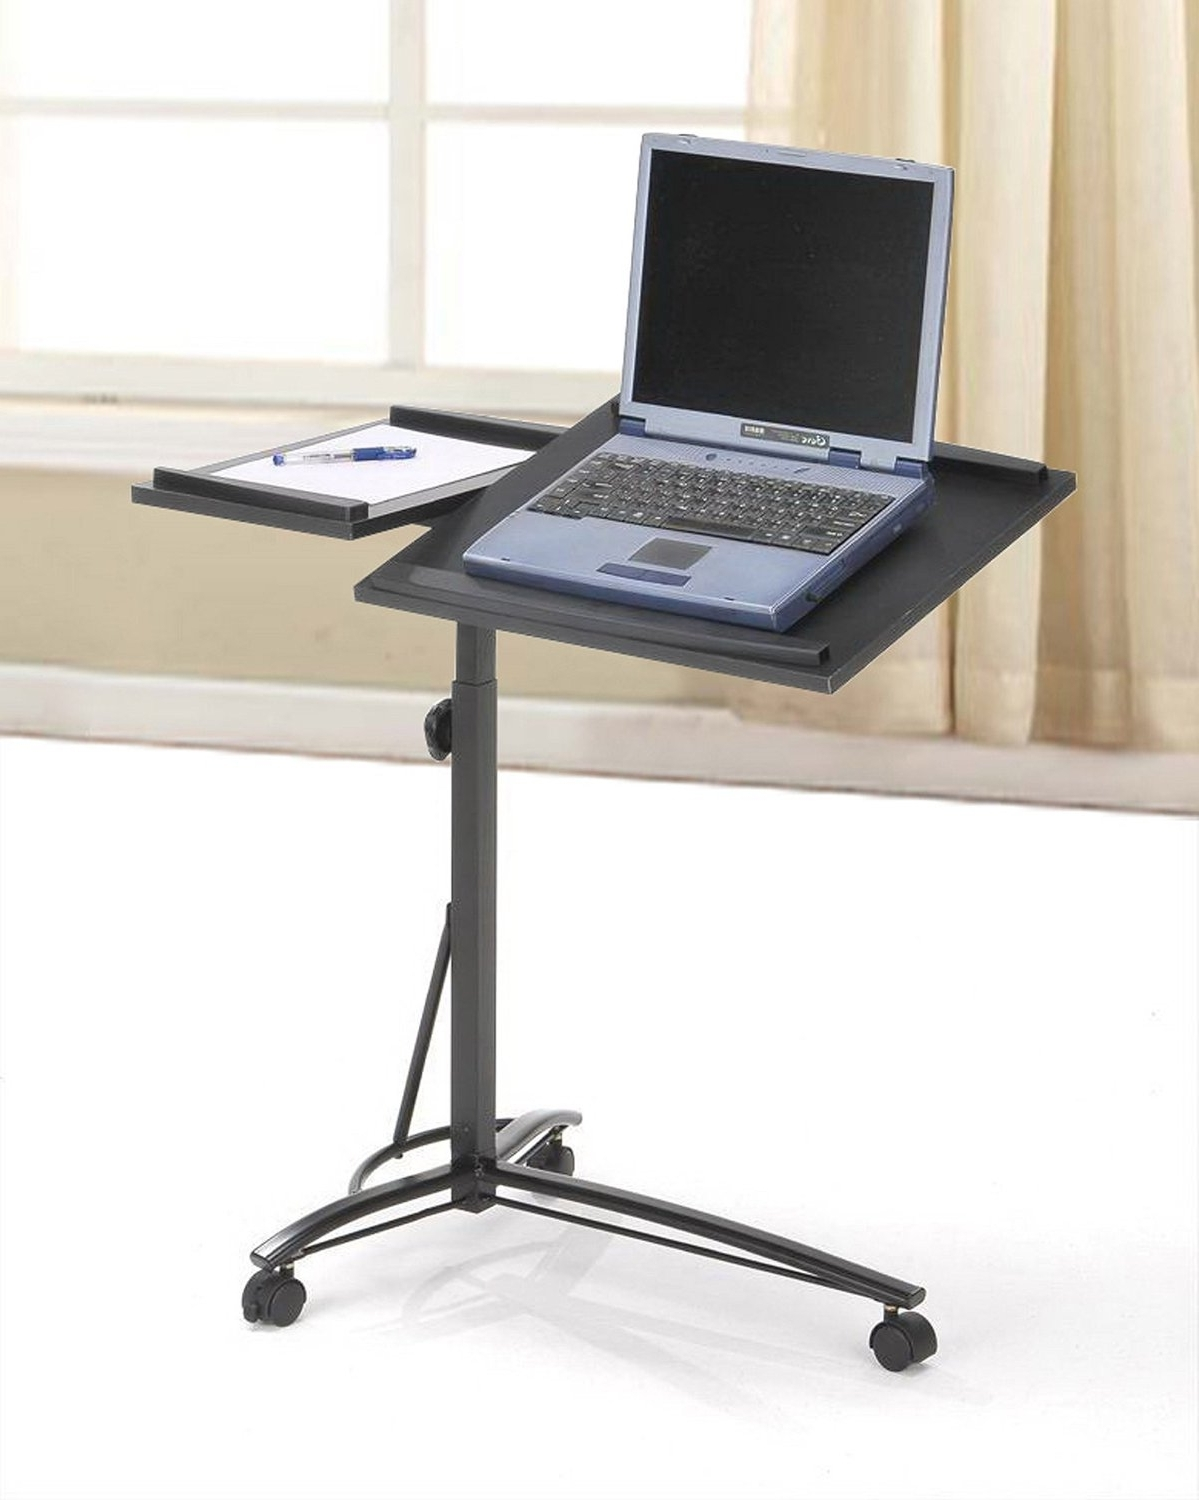 Well Liked Computer Desks With Wheels With Regard To Desk: Interesting Portable Computer Desk On Wheels 2017 Ideas (View 20 of 20)